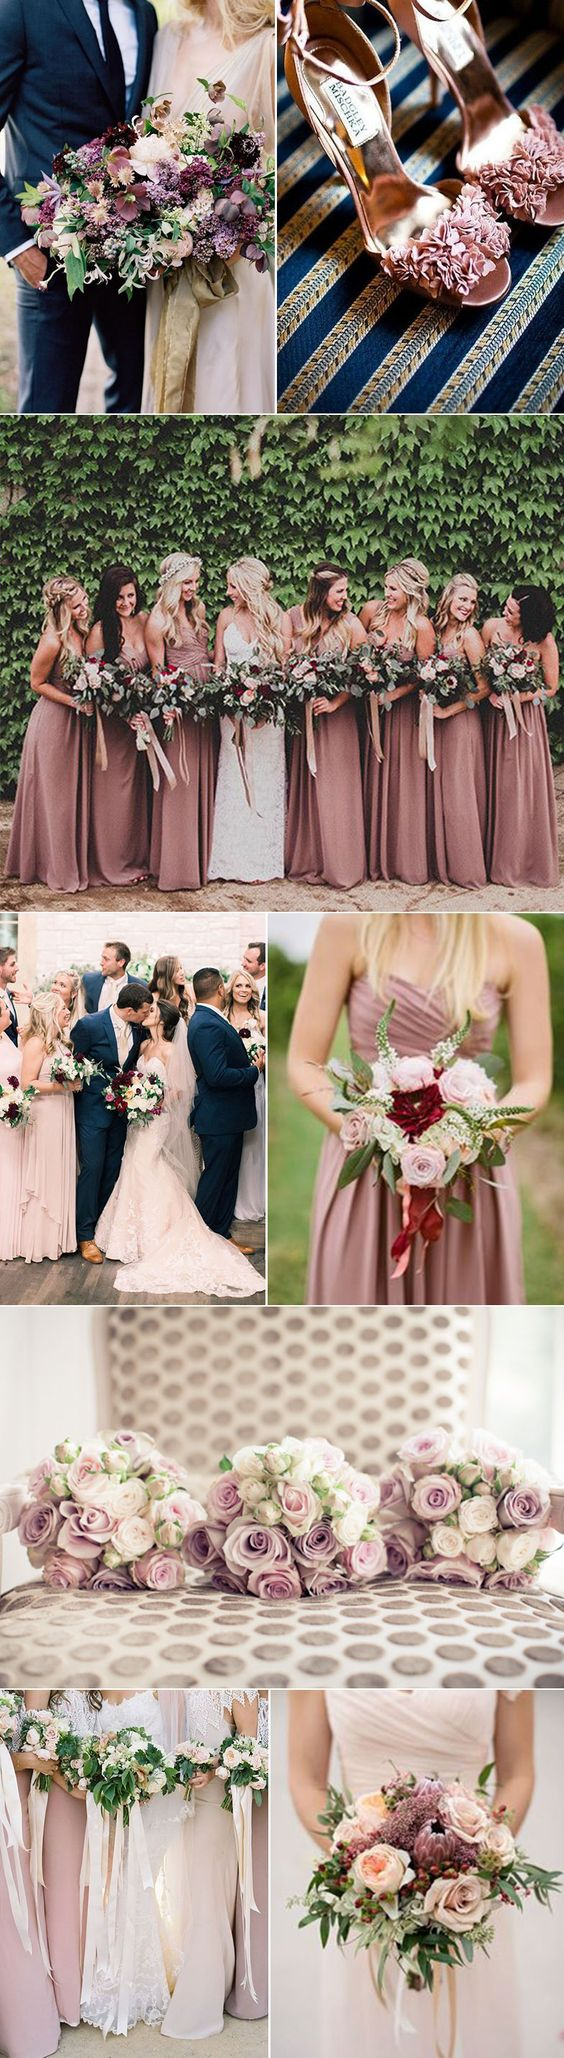 best images about ashlyns wedding on pinterest wedding guest